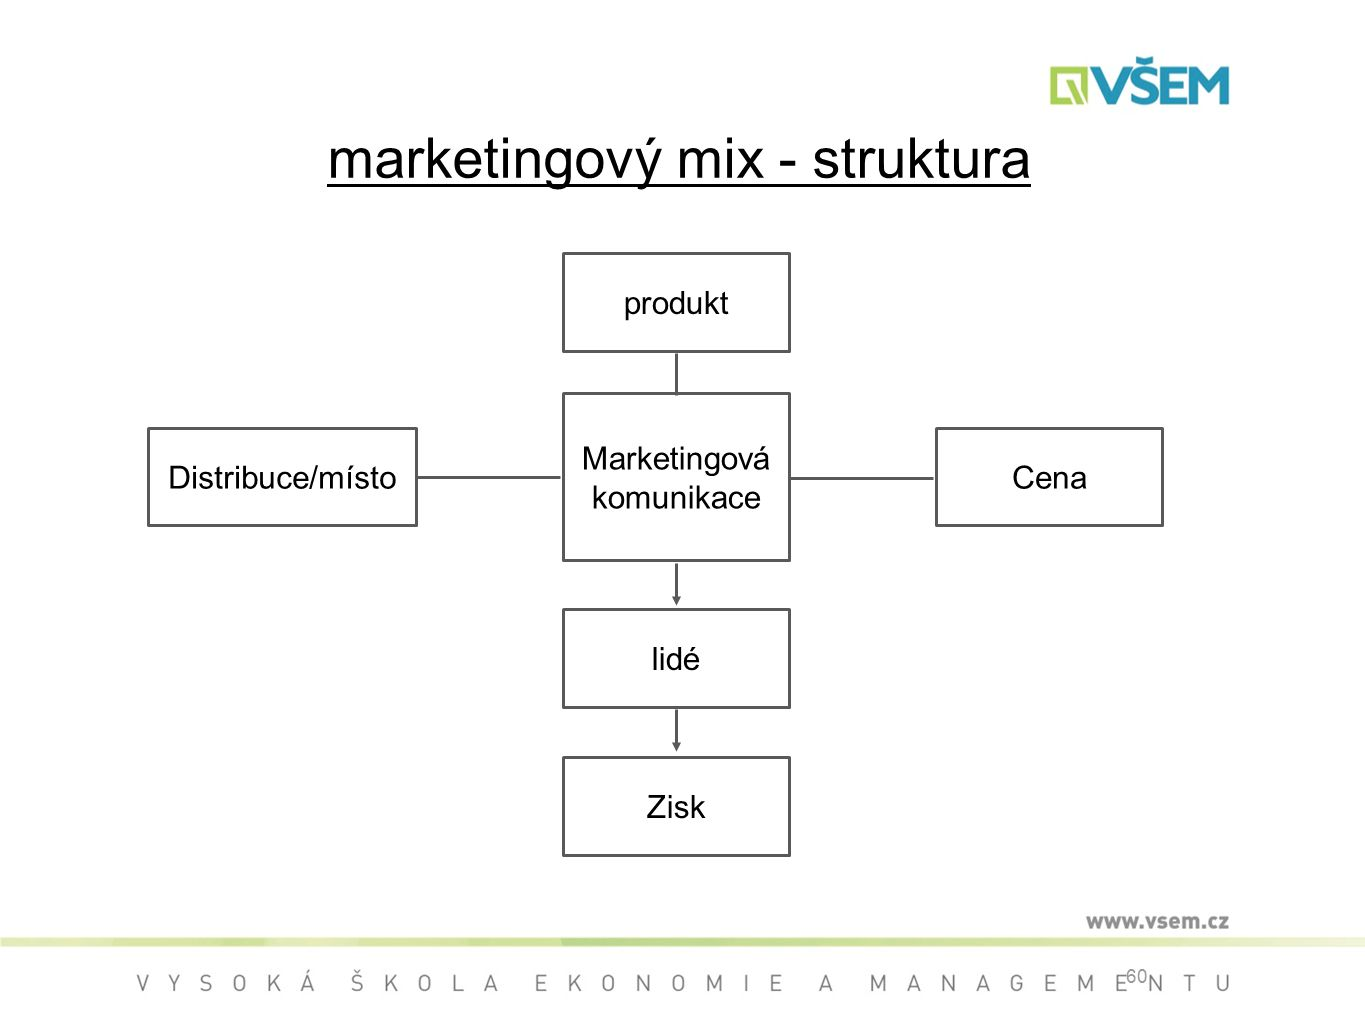 marketingový mix - struktura